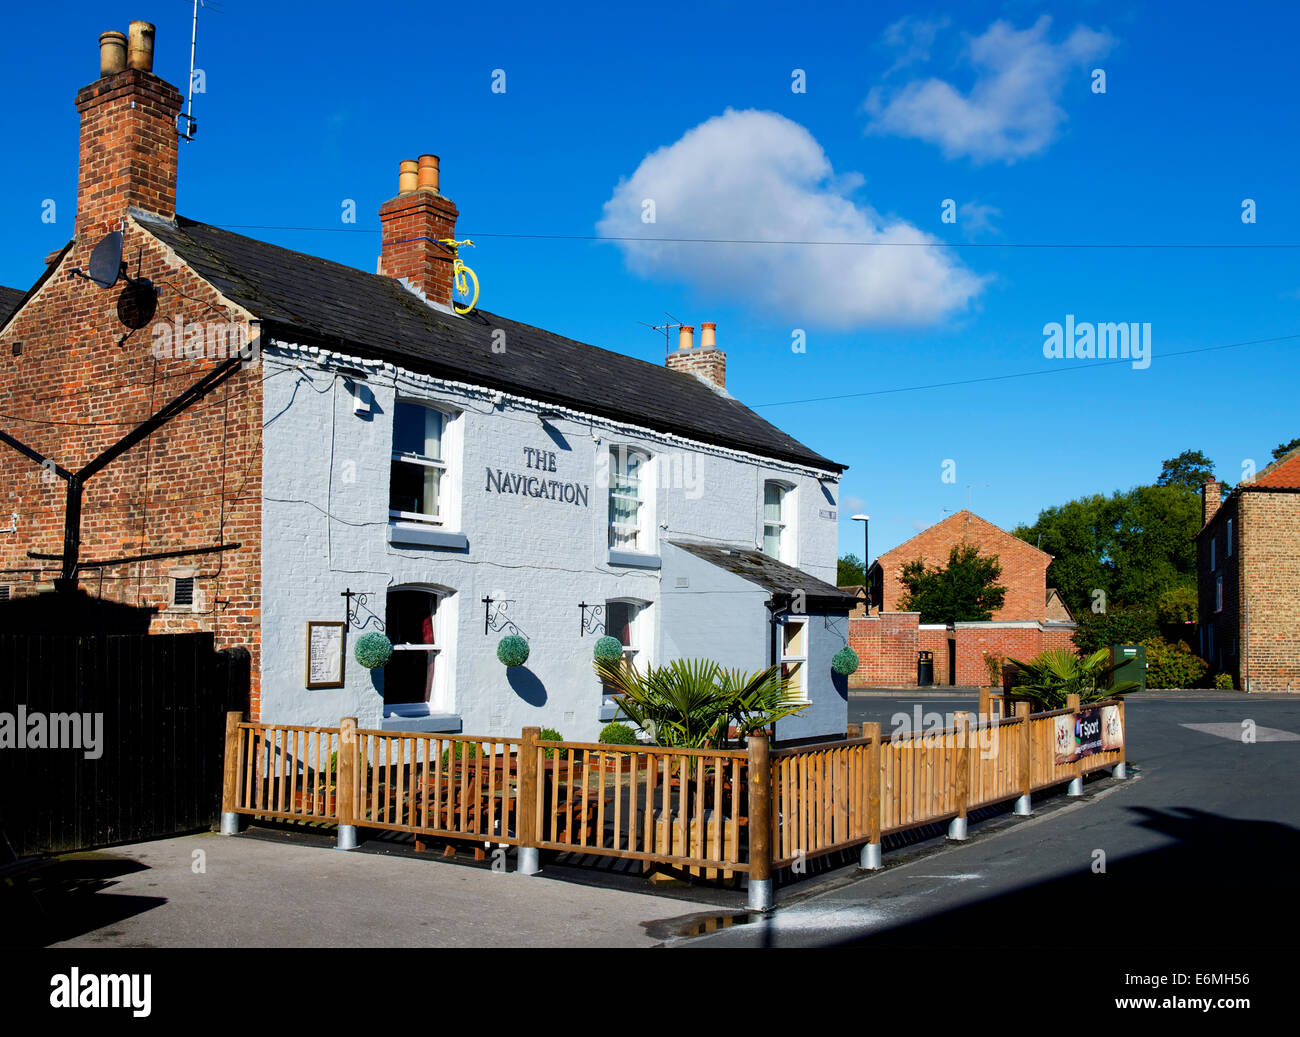 The Navigation pub in Ripon, North Yorkshire, England UK - Stock Image